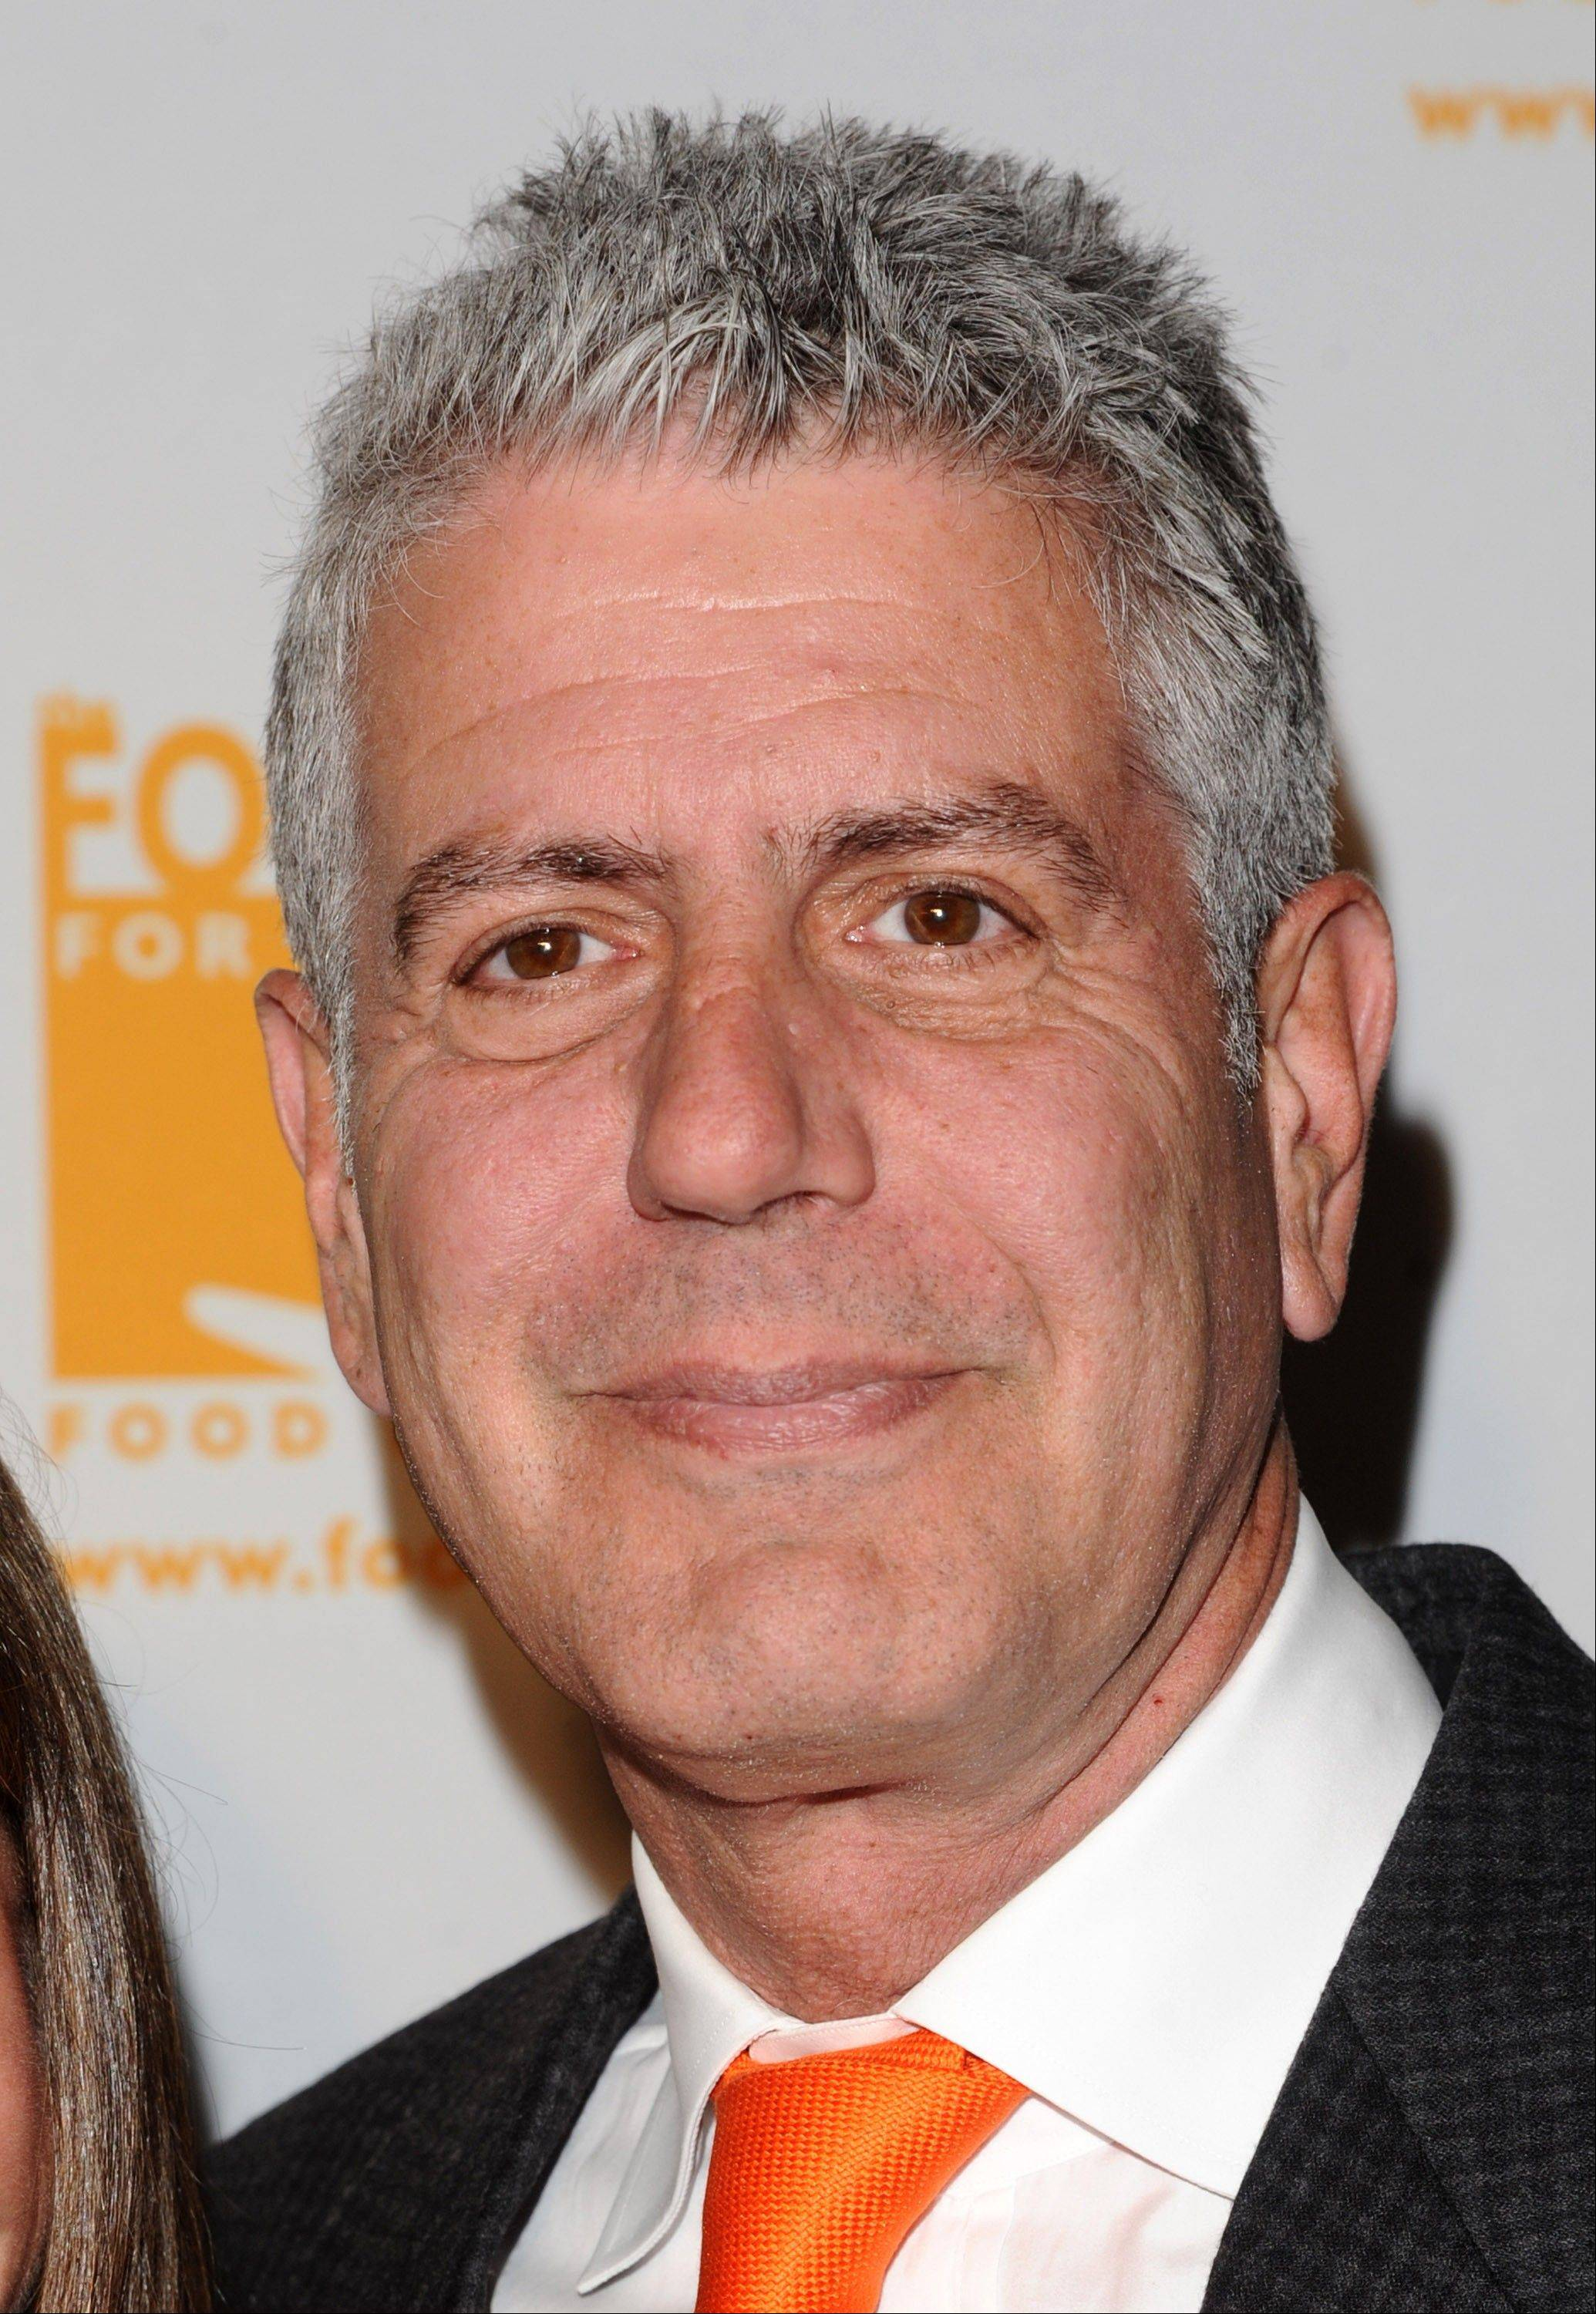 Anthony Bourdain will host a weekend show on food and travel. The series is expected to launch early next year.